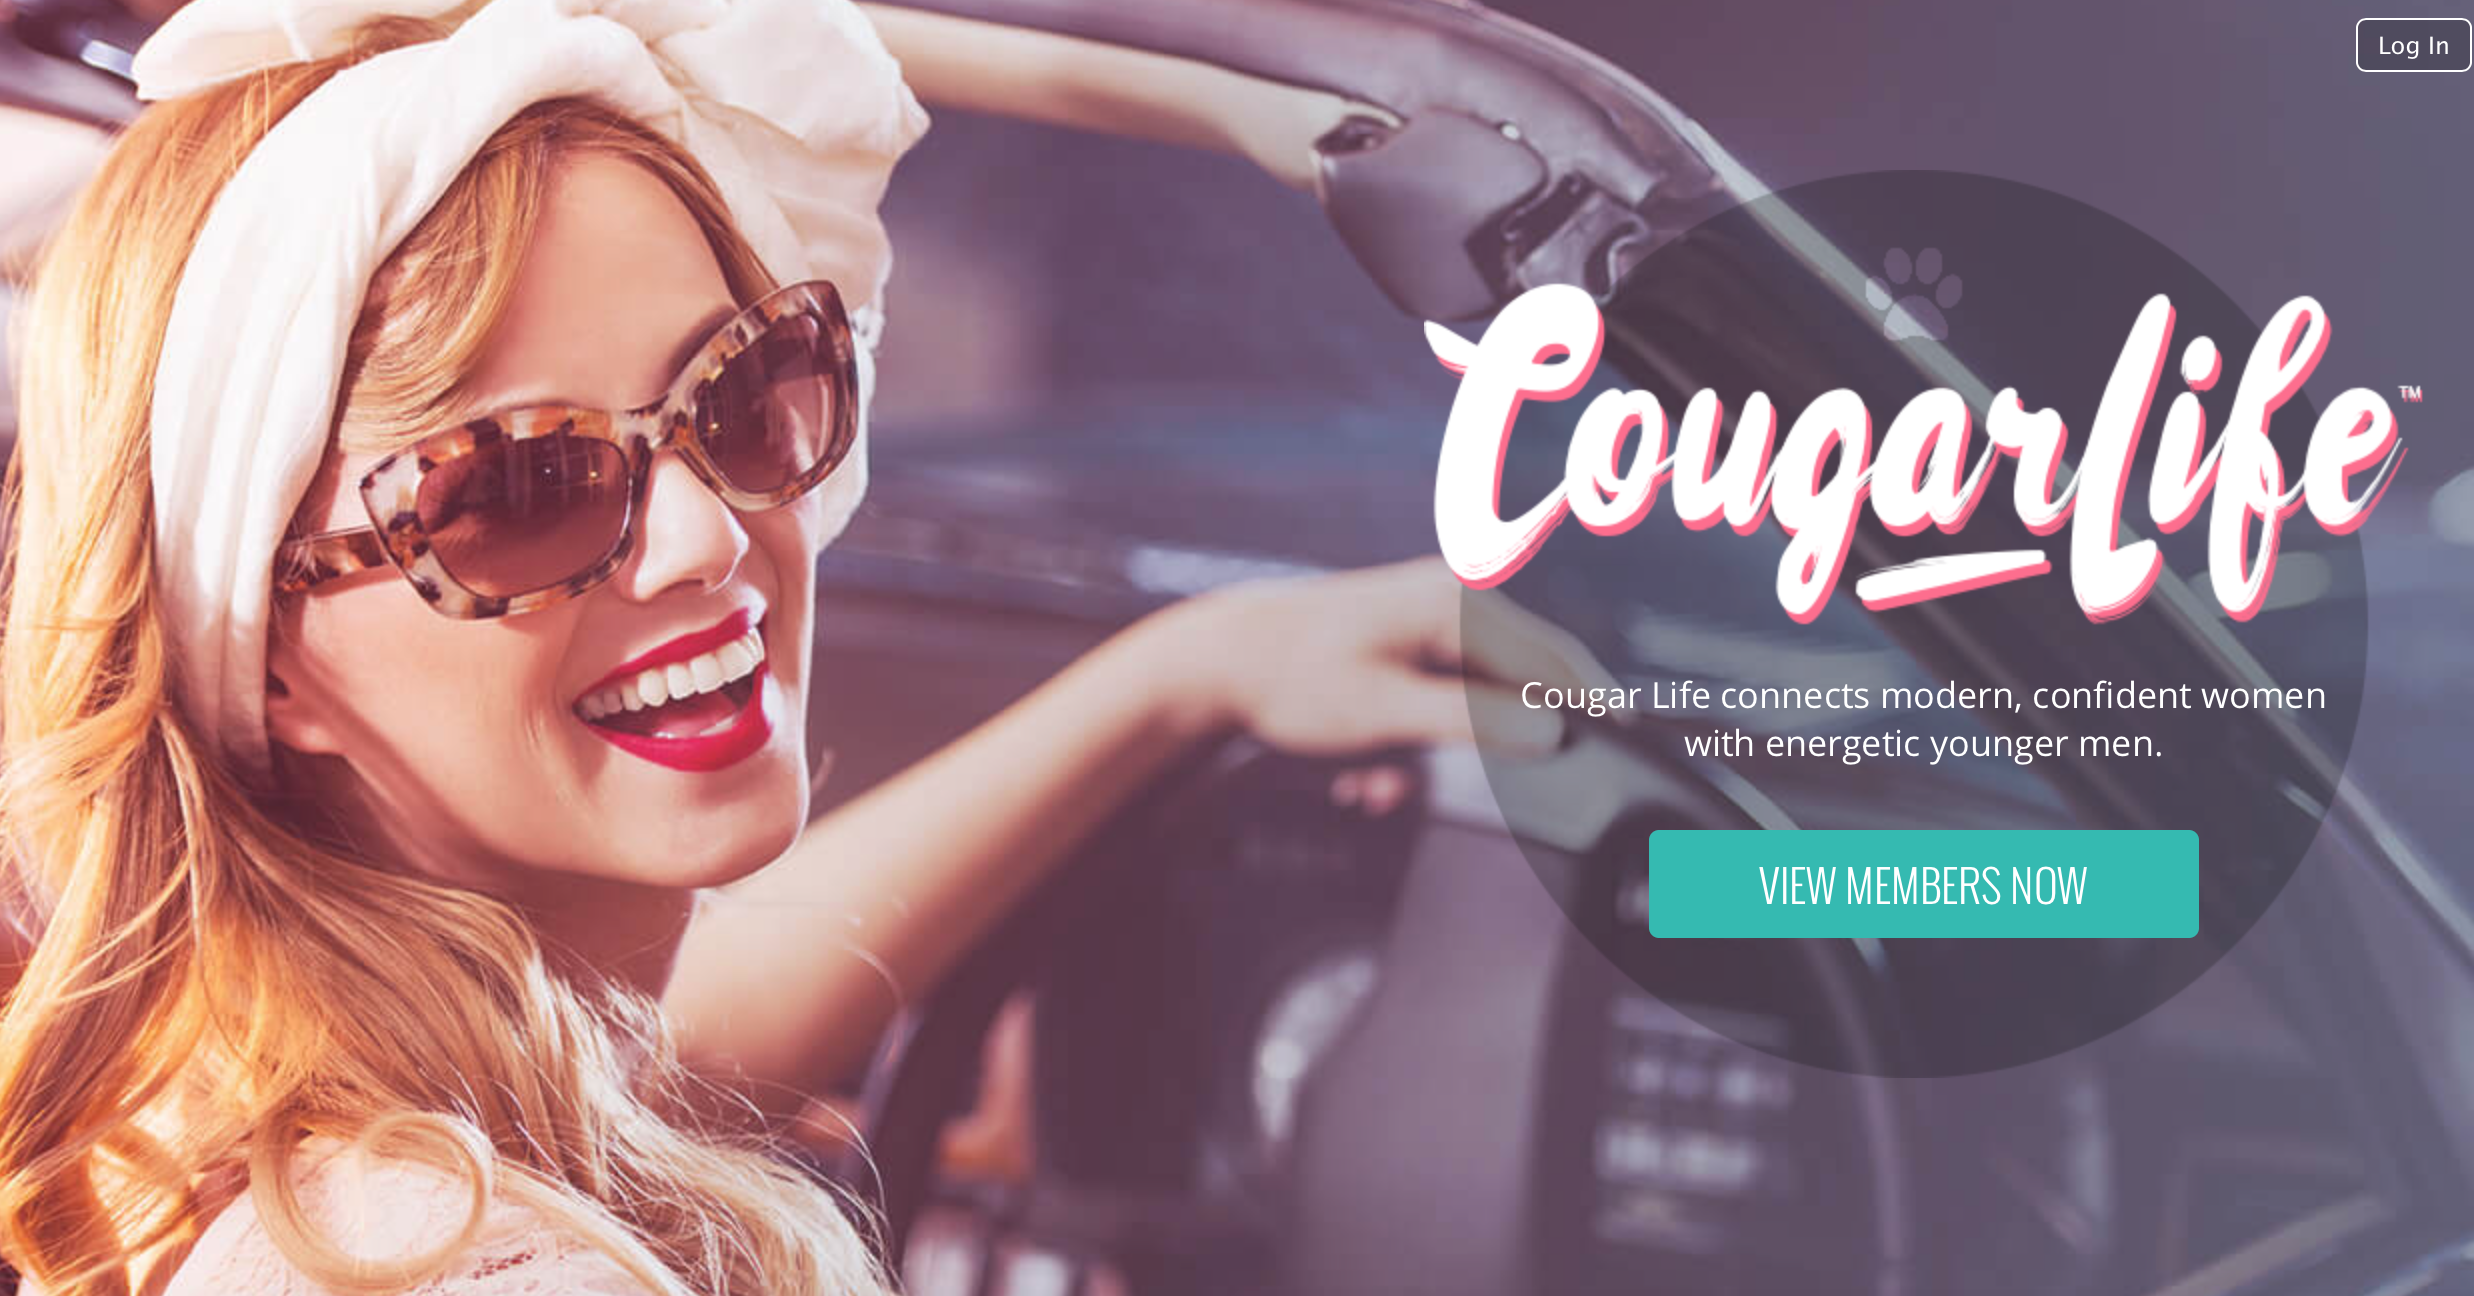 oldenzaal cougars dating site Cougardatecouk is certainly not the most affordable cougar dating sites available on the market the website is on the pricier side and given the fact that there is.